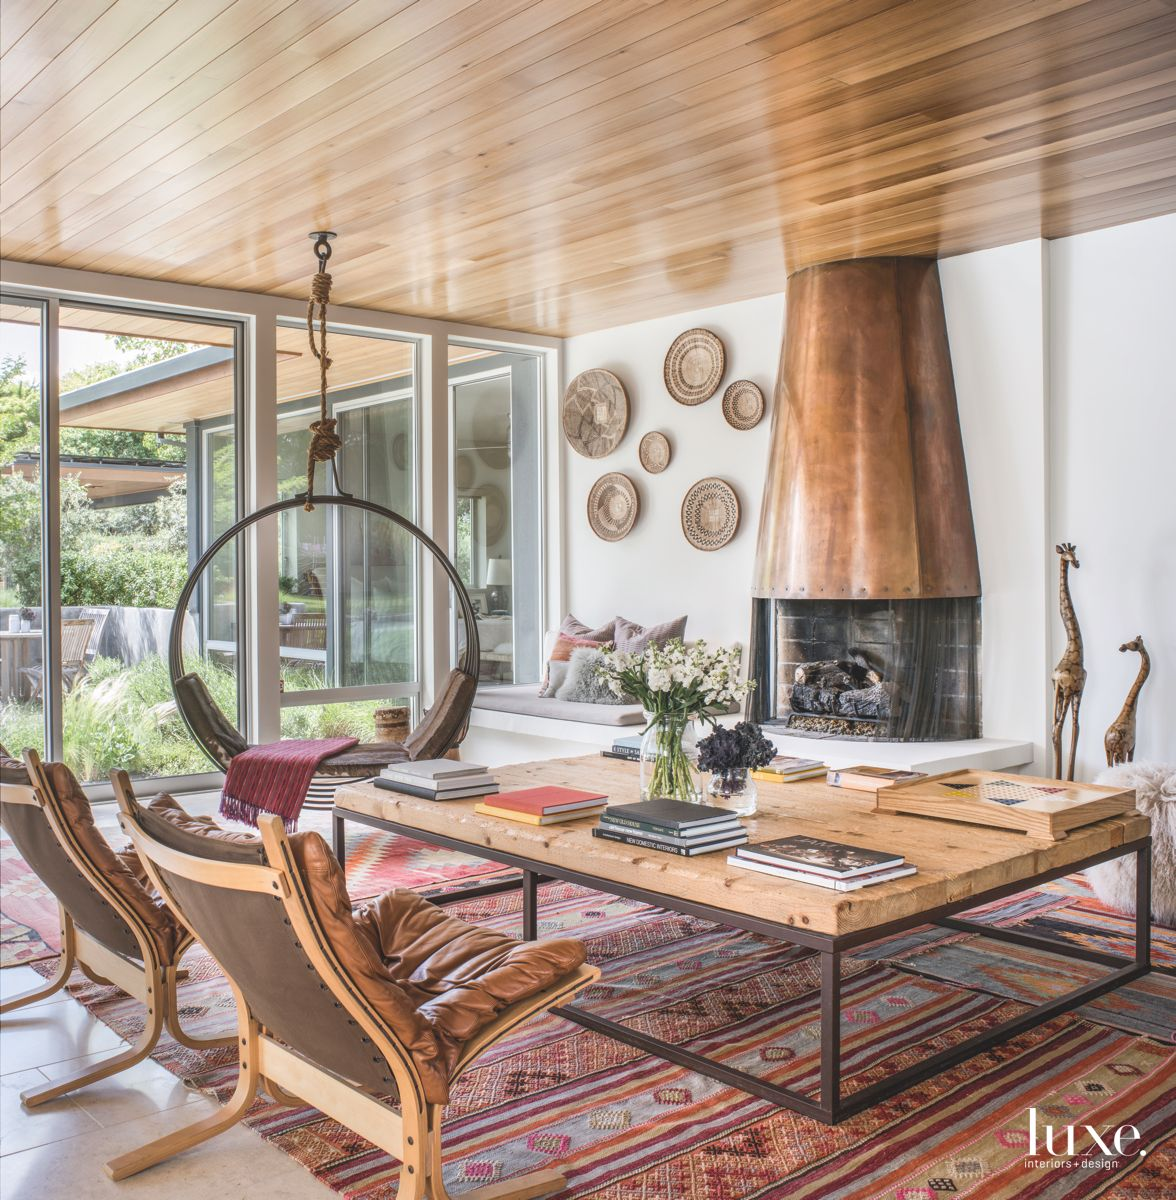 Copper Fireplace with Circular Swing Chair and Vibrant Turkish Rug